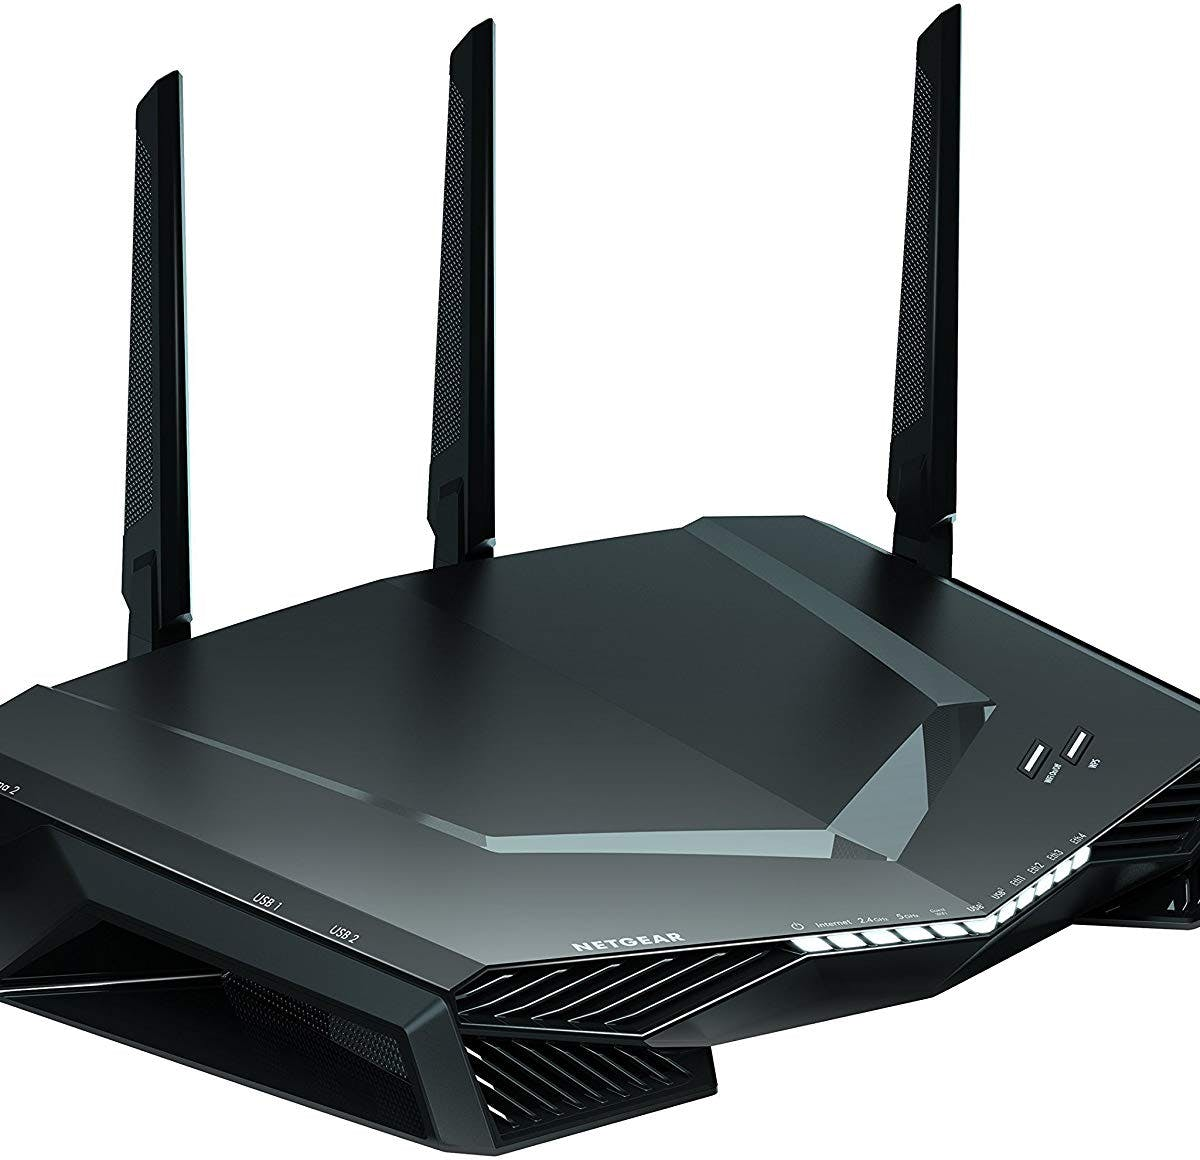 Want a Better Gaming Experience? Pick Up One Of These Routers